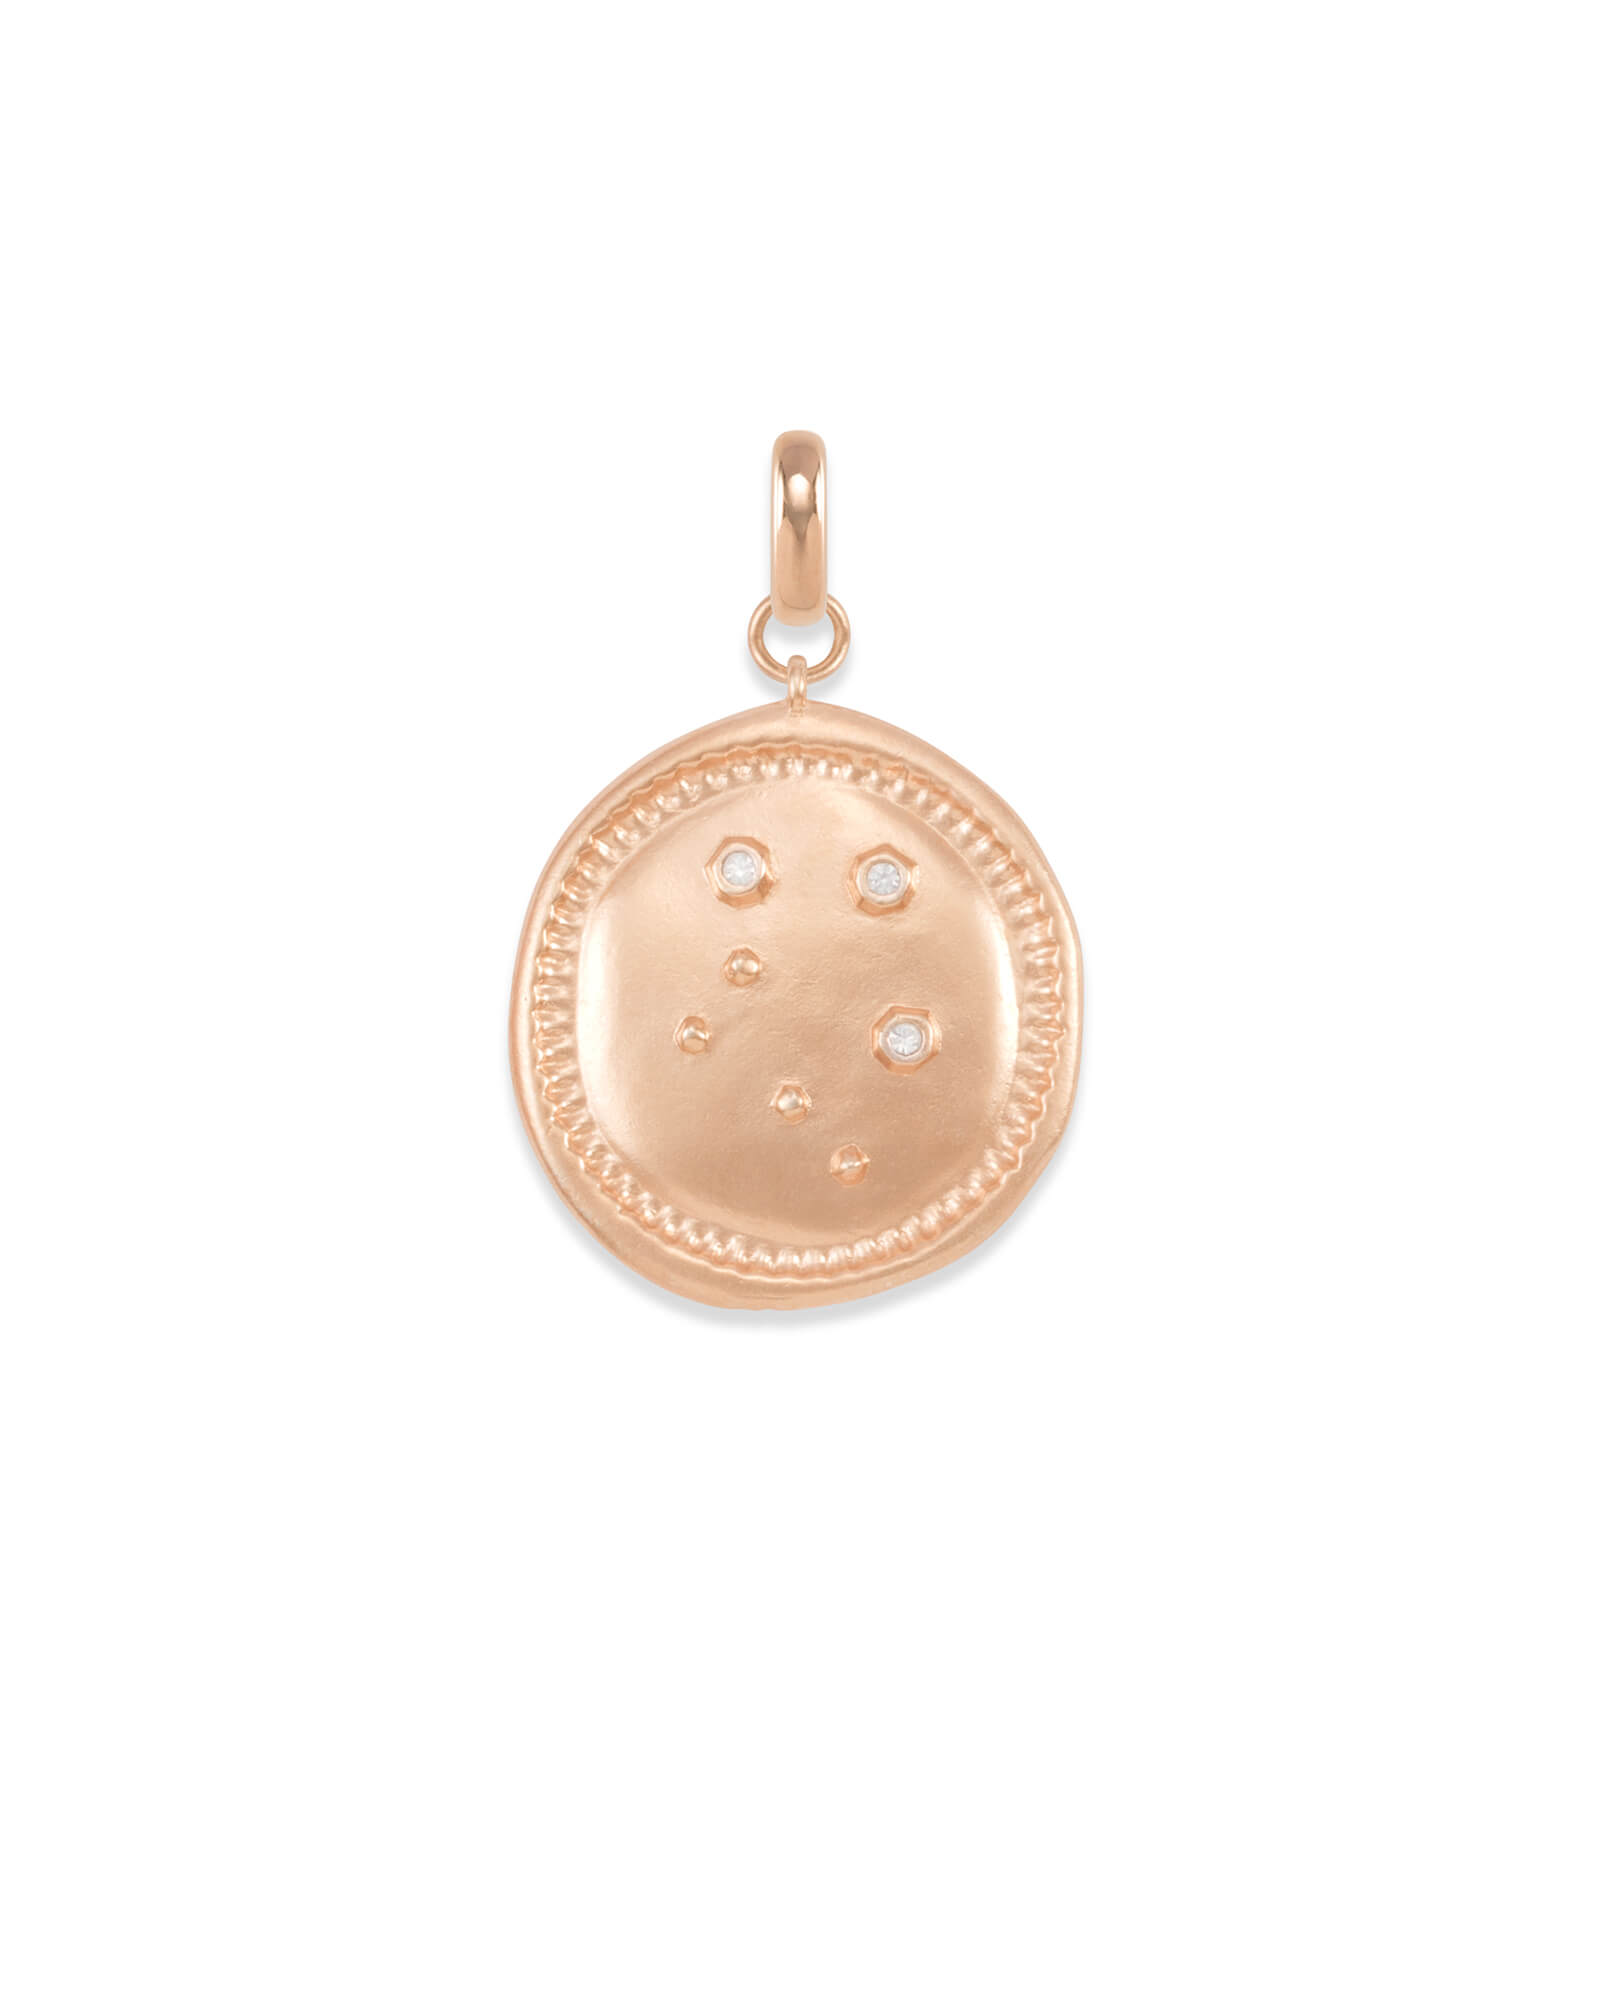 Libra Coin Charm in Rose Gold